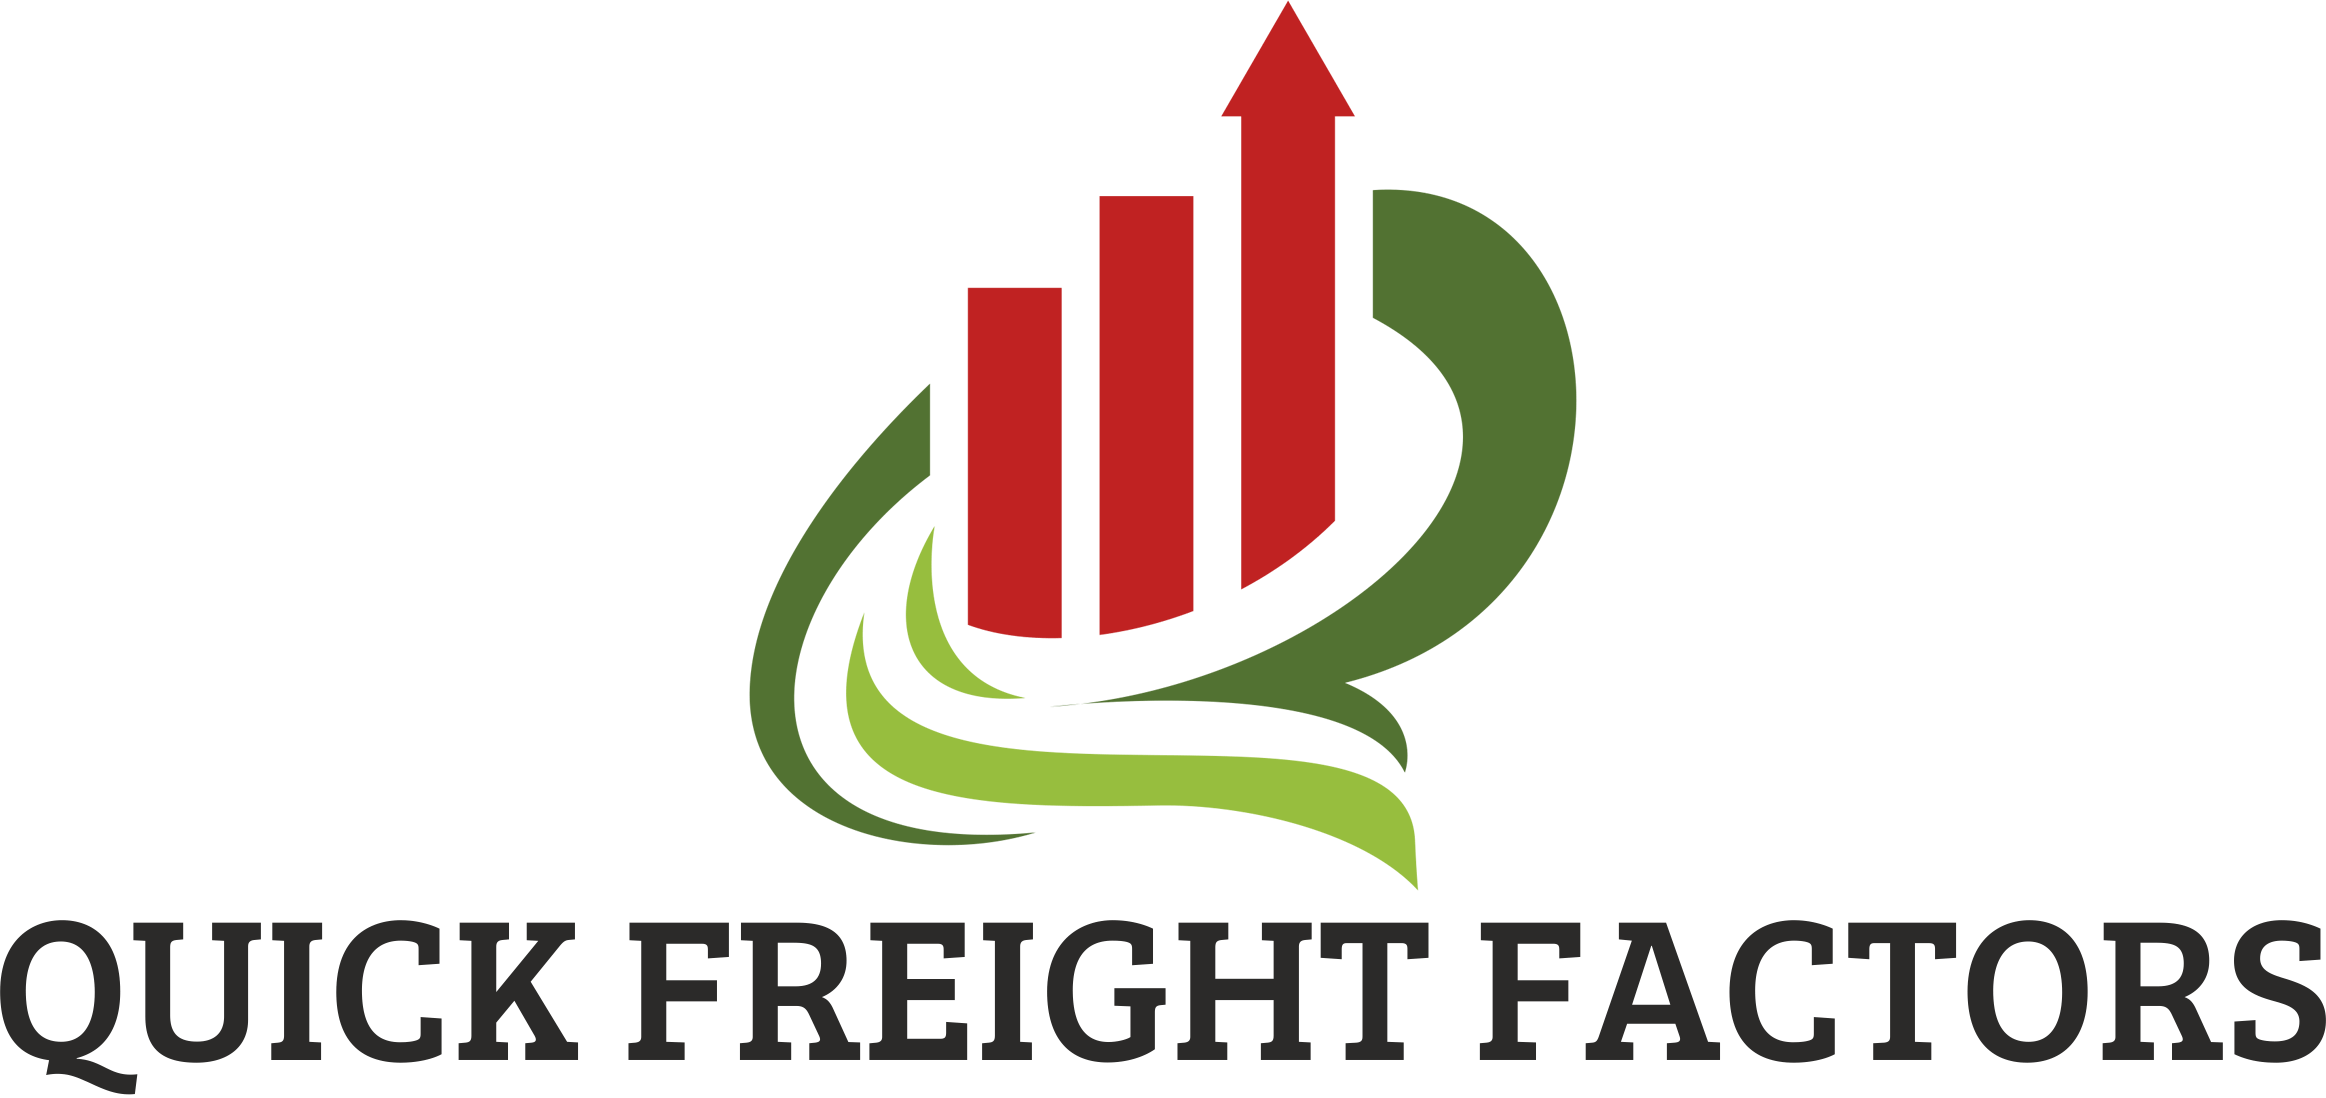 Quick Freight Factors